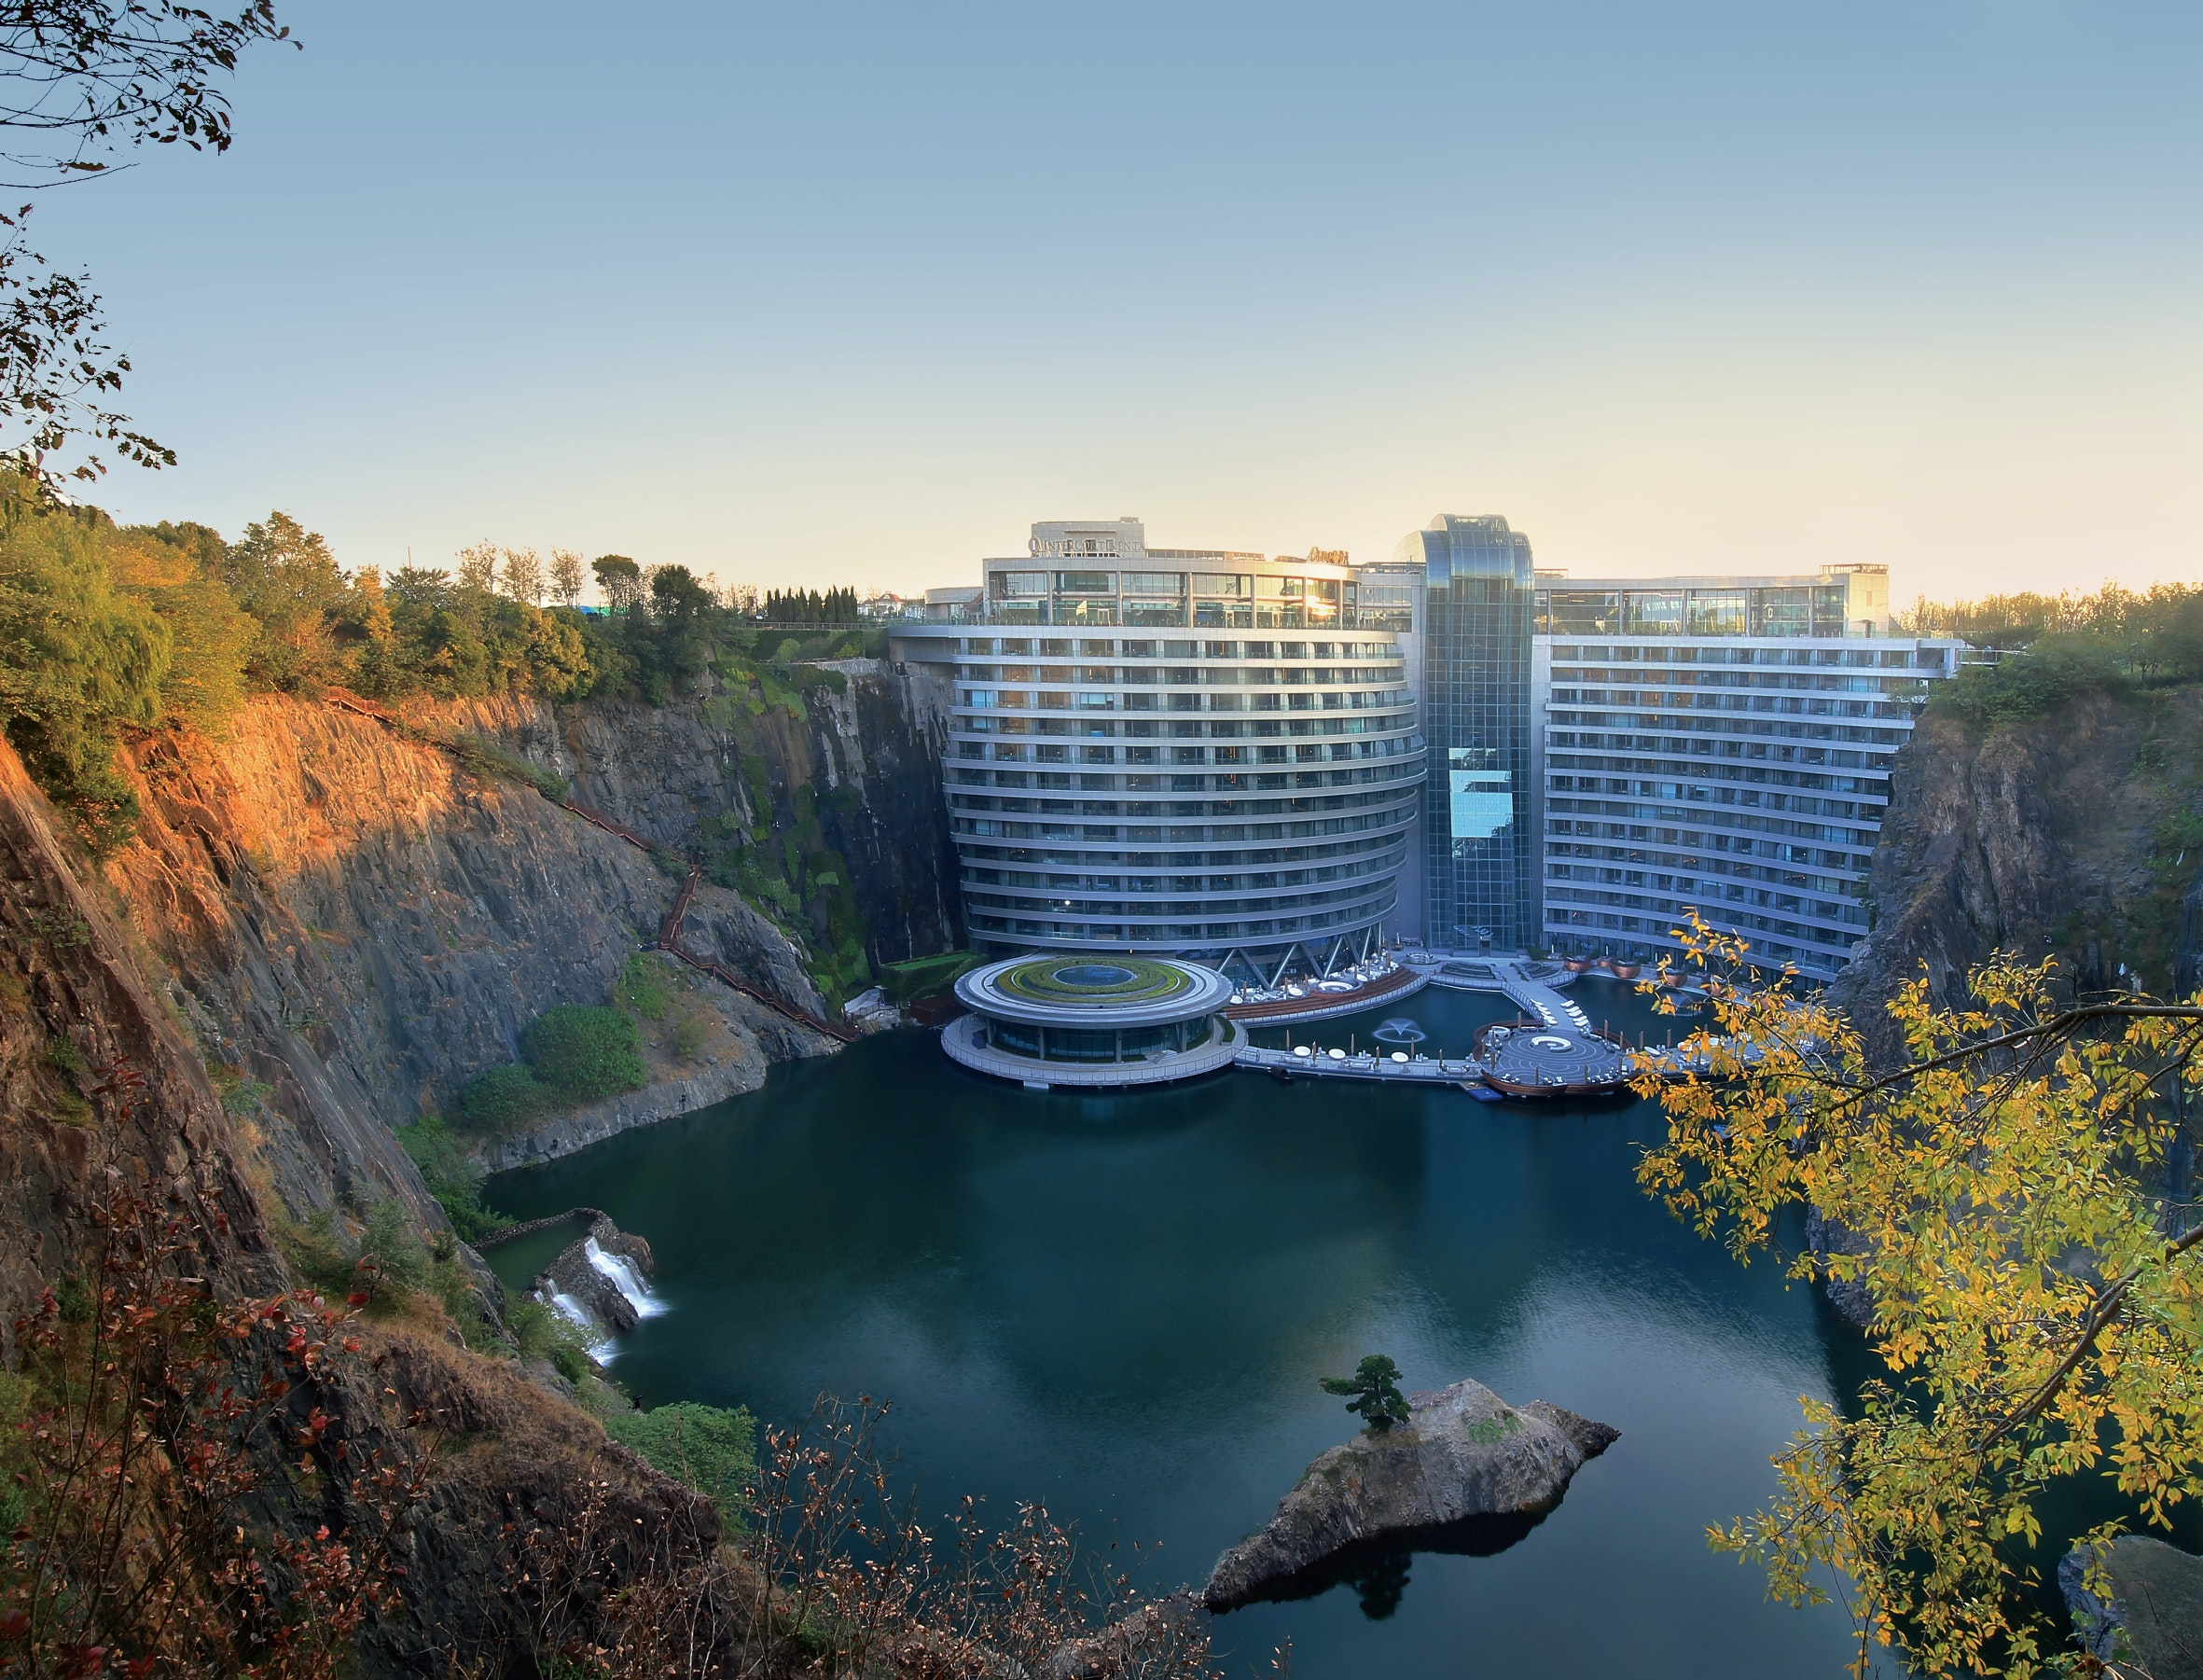 The InterContinental Shanghai Wonderland is located in a quarry outside Shanghai.